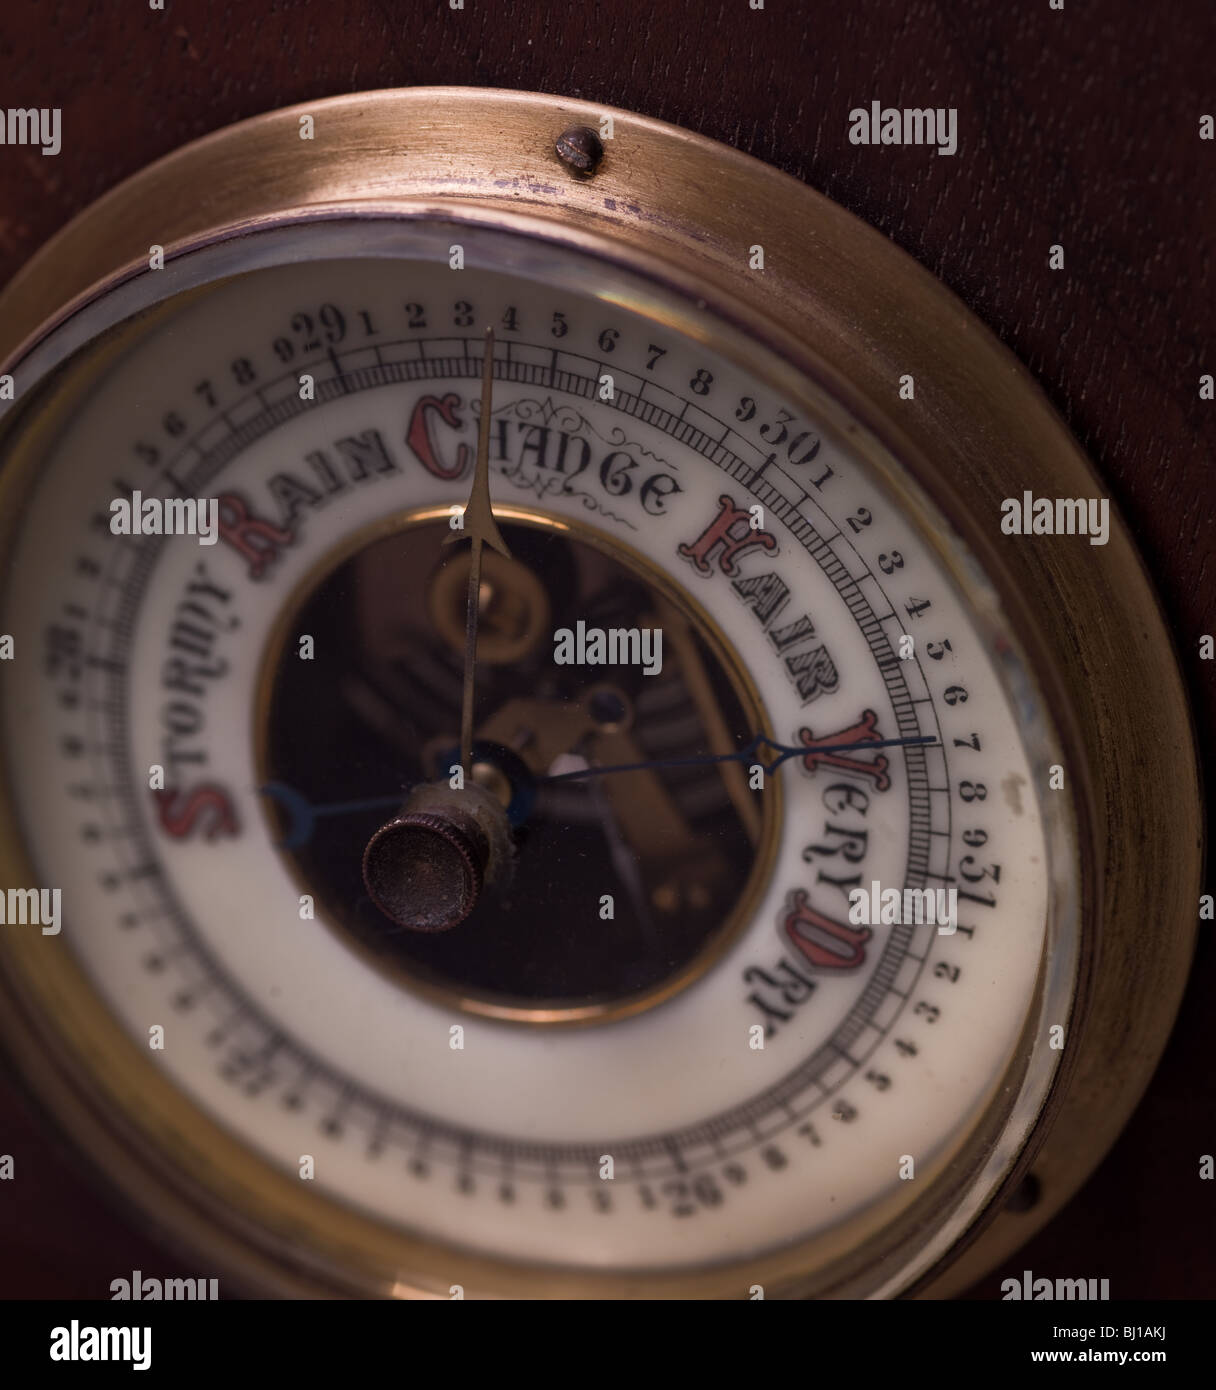 Barometer Stock Photos & Barometer Stock Images